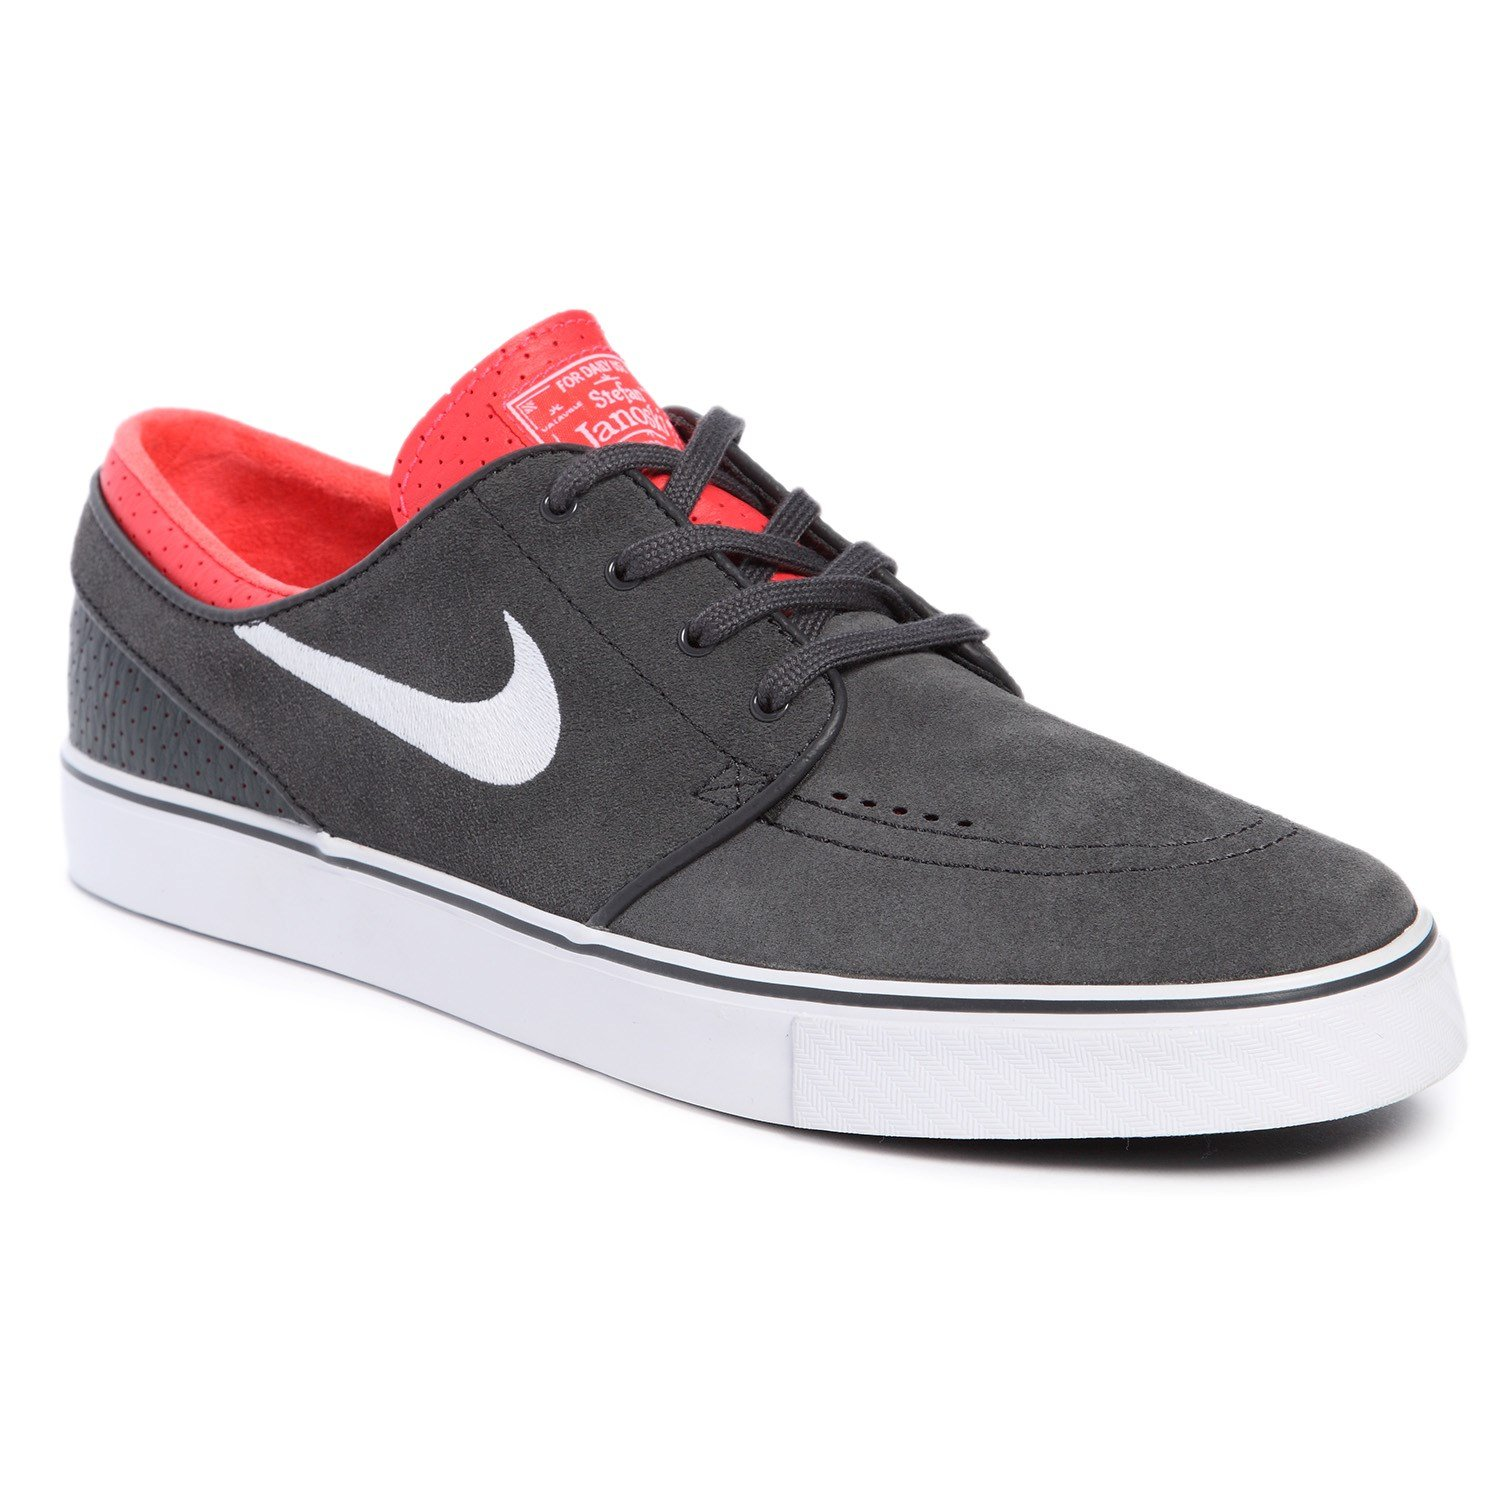 nike sb zoom stefan janoski shoes evo. Black Bedroom Furniture Sets. Home Design Ideas